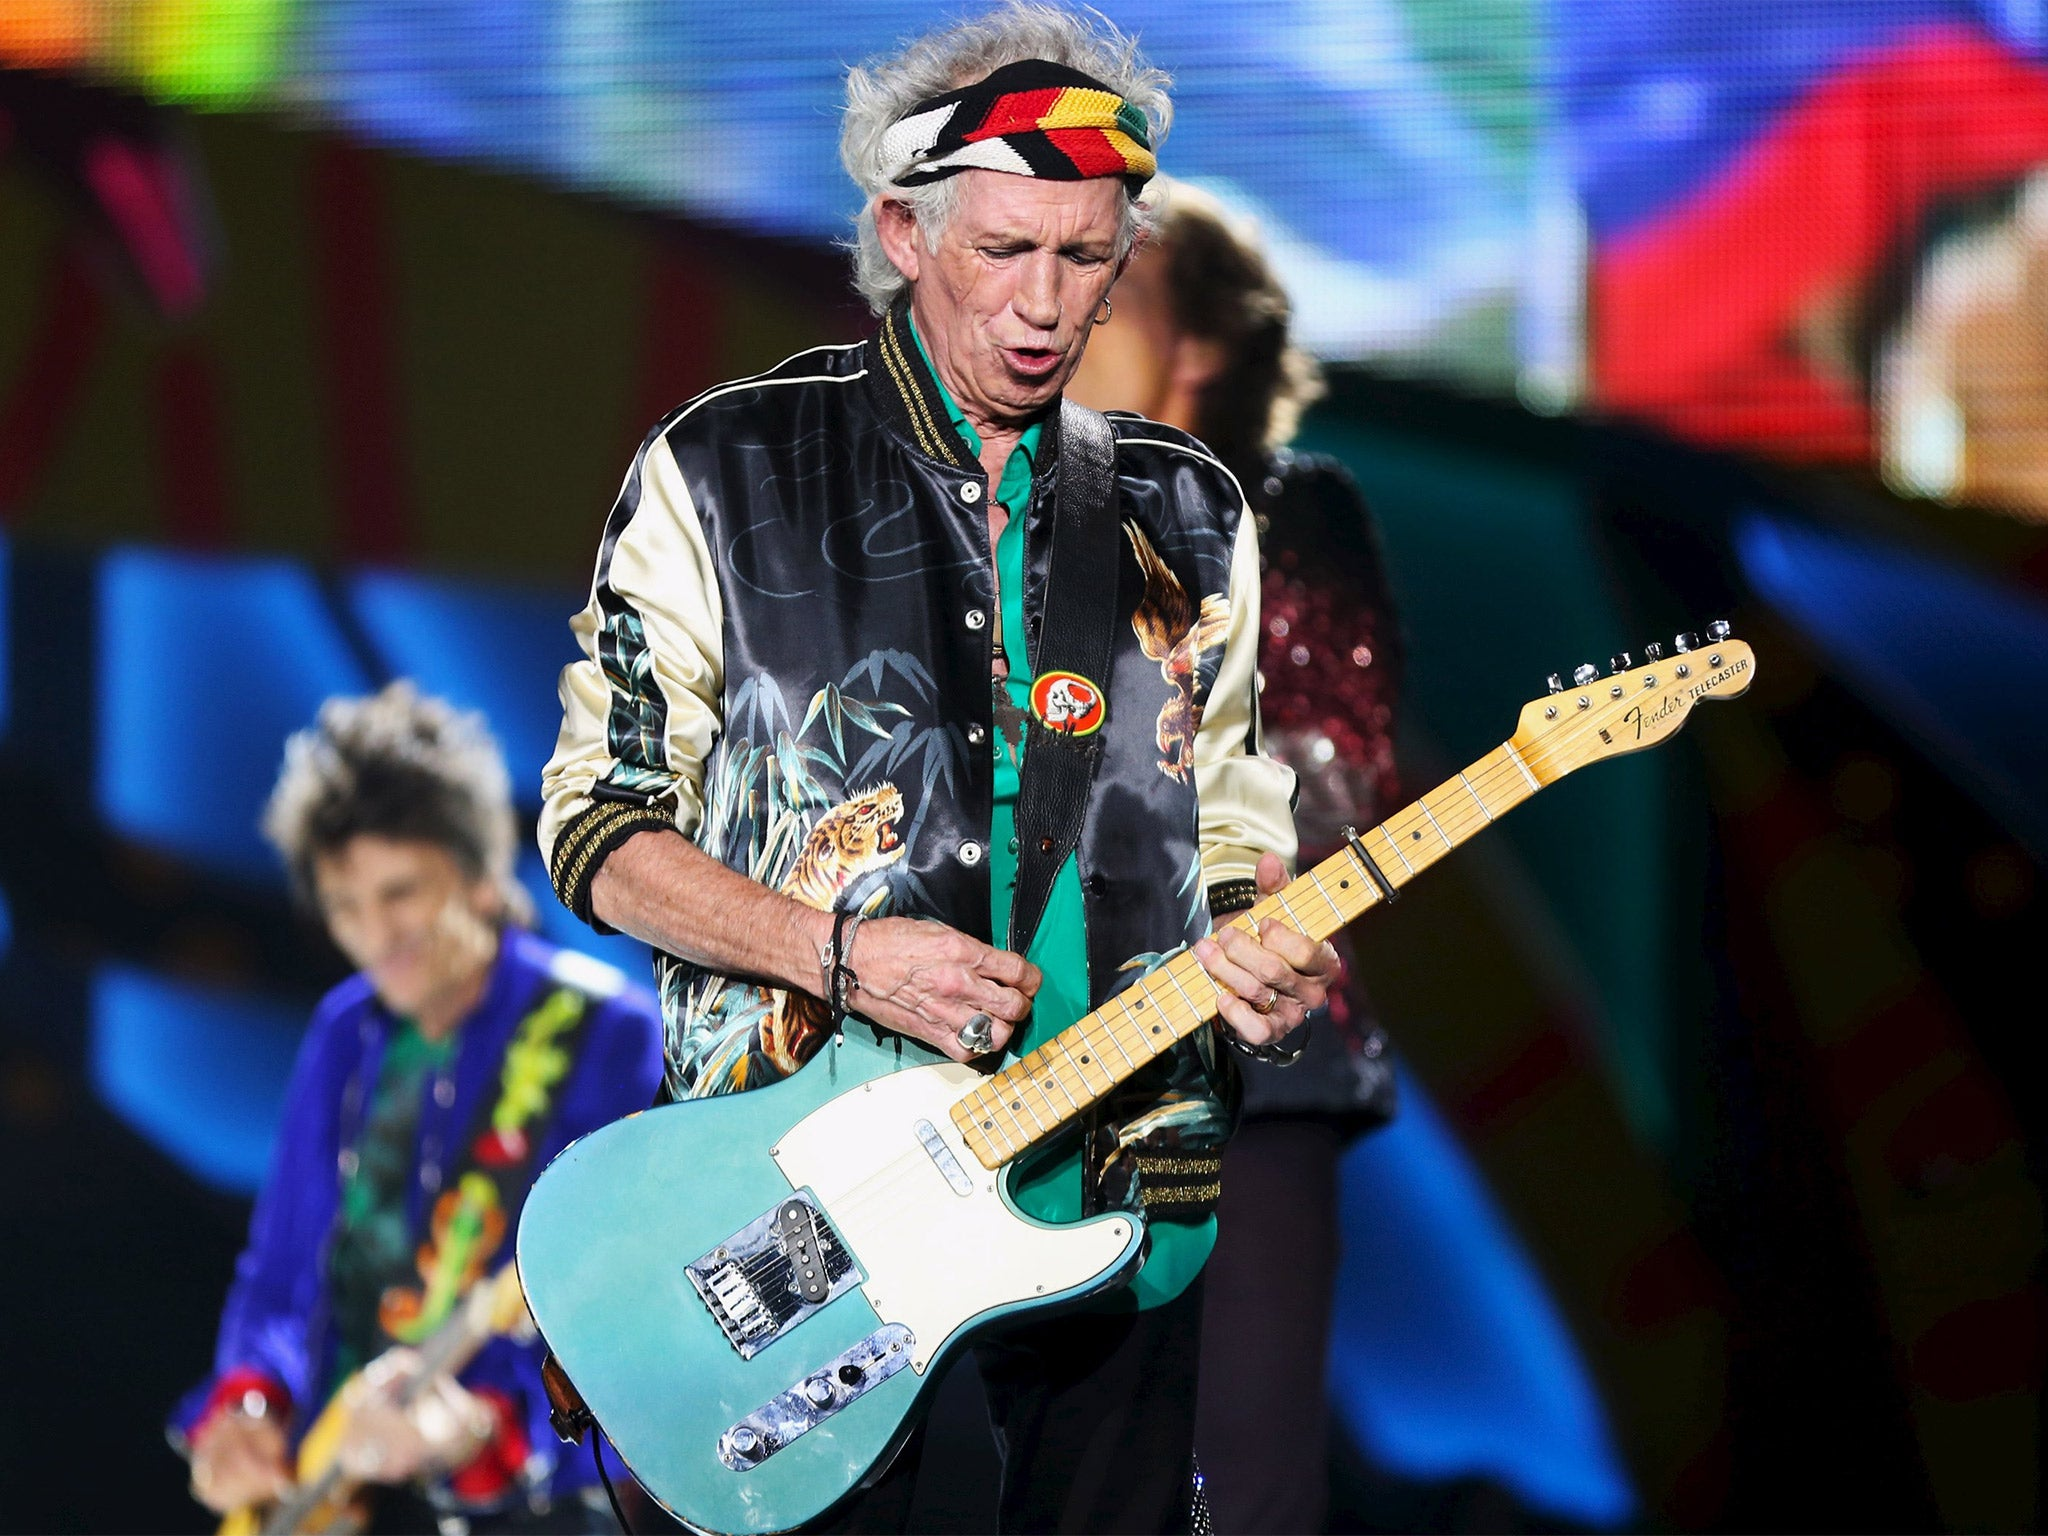 Keith Richards claims Adele, Rihanna and other contemporary